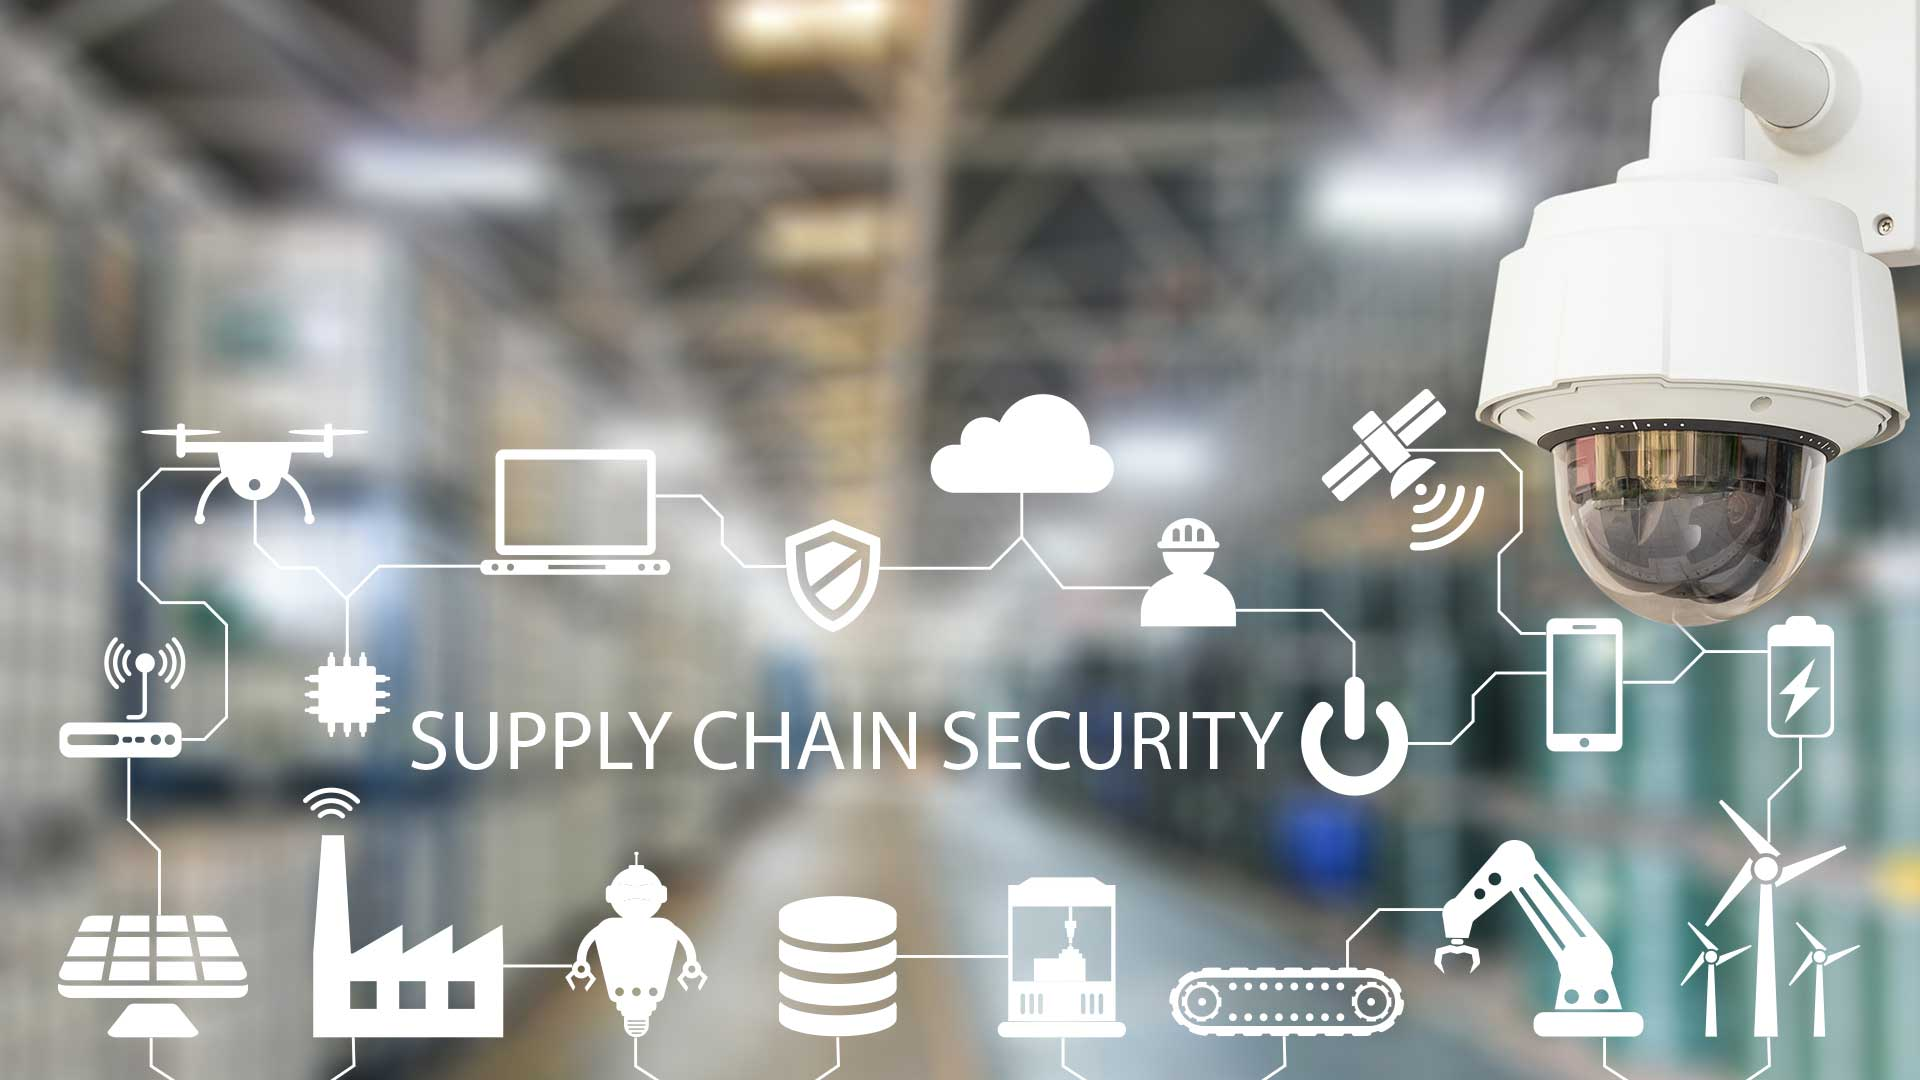 7 Supply Chain Security Concerns to Address in 2019 - The